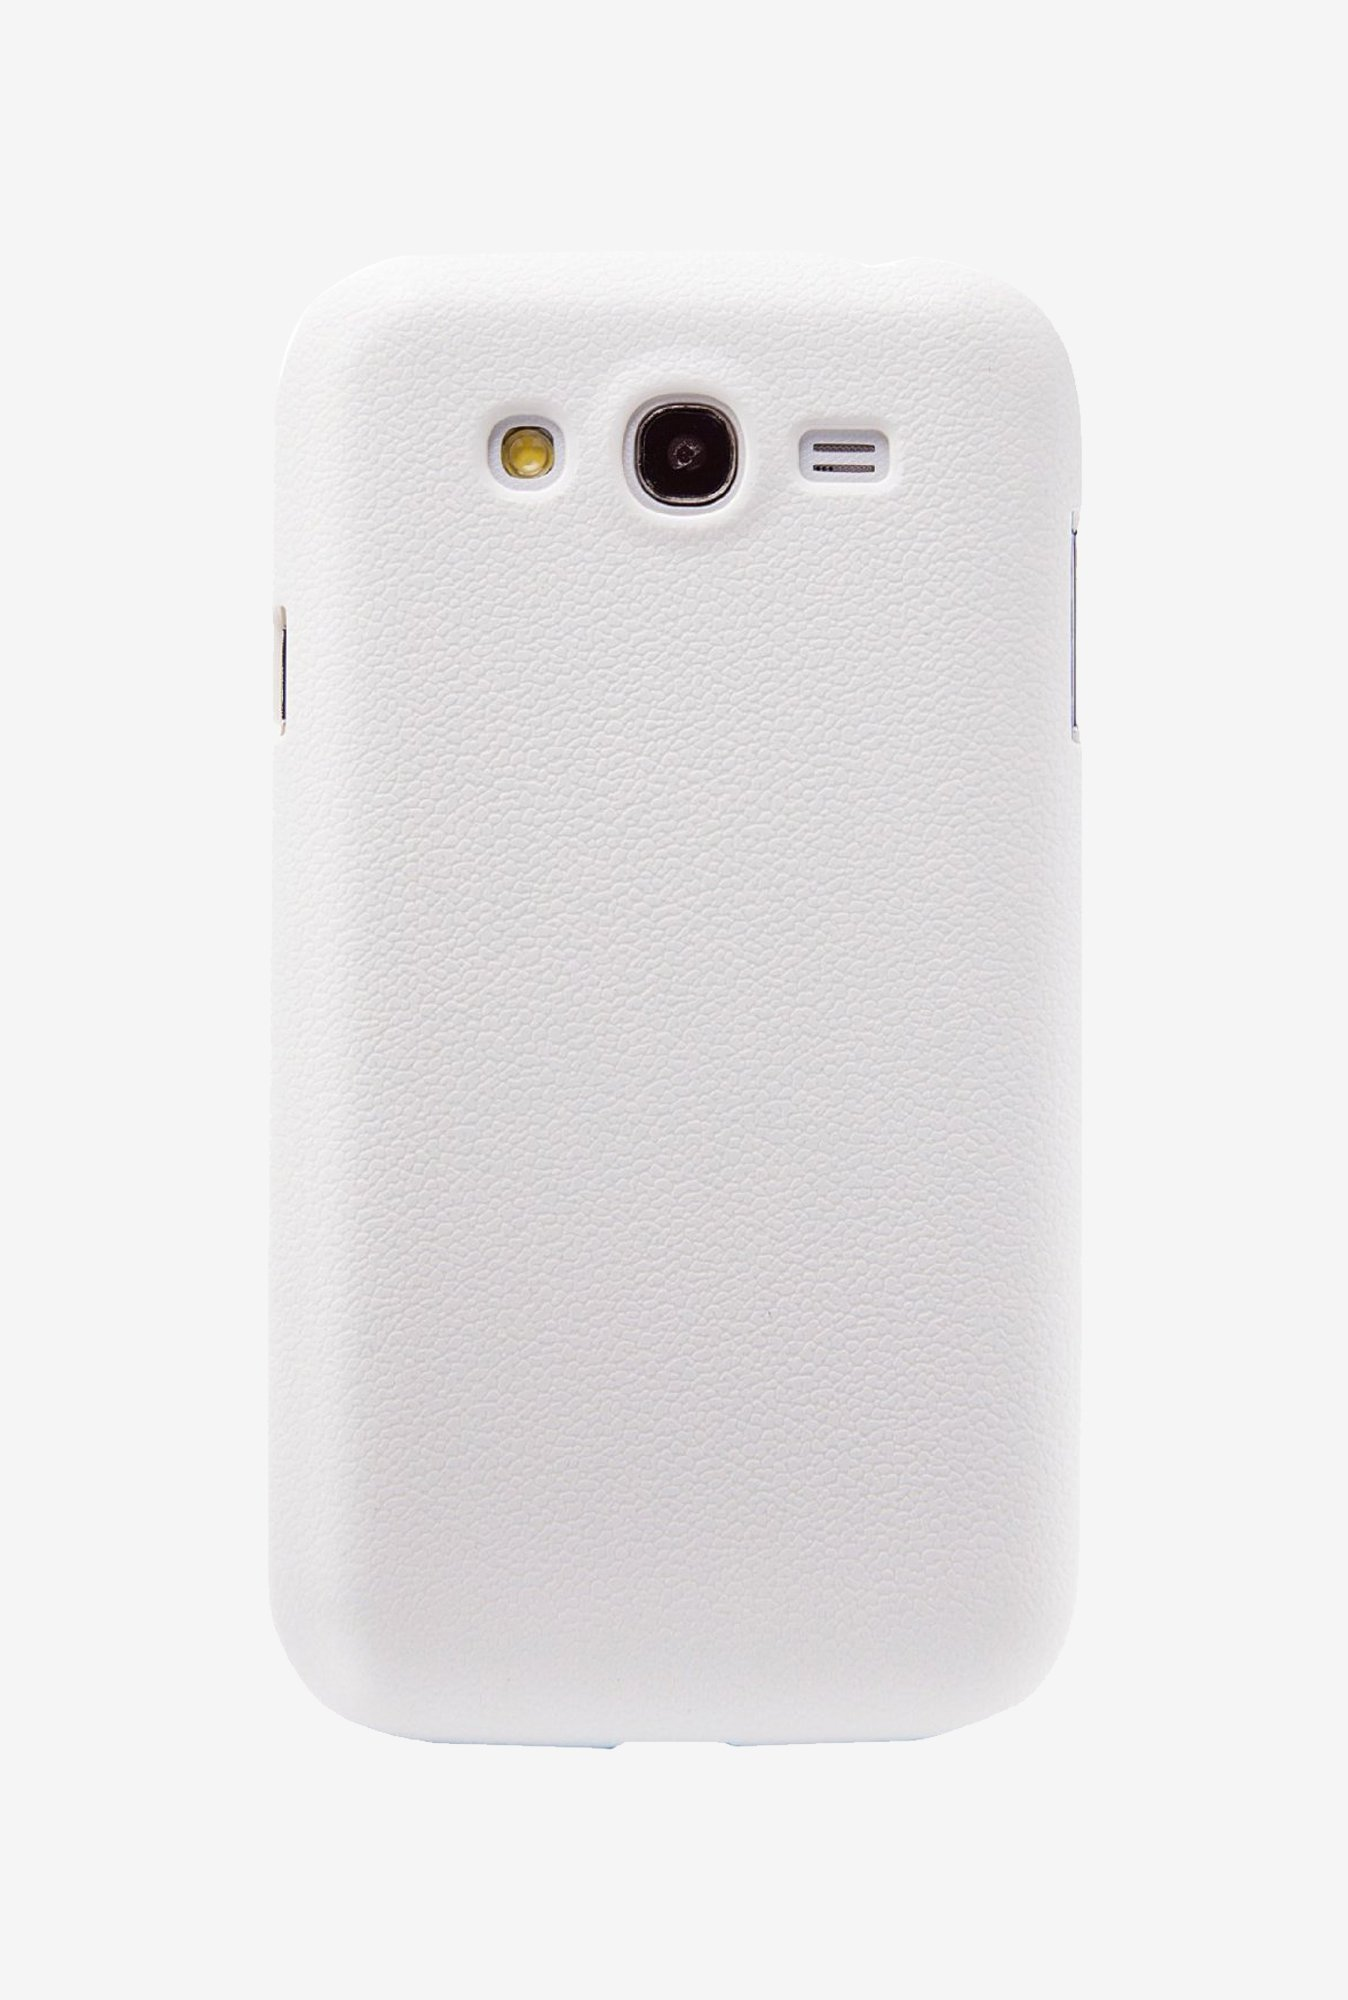 iAccy SS9051 Back Cover White for Samsung Galaxy Grand